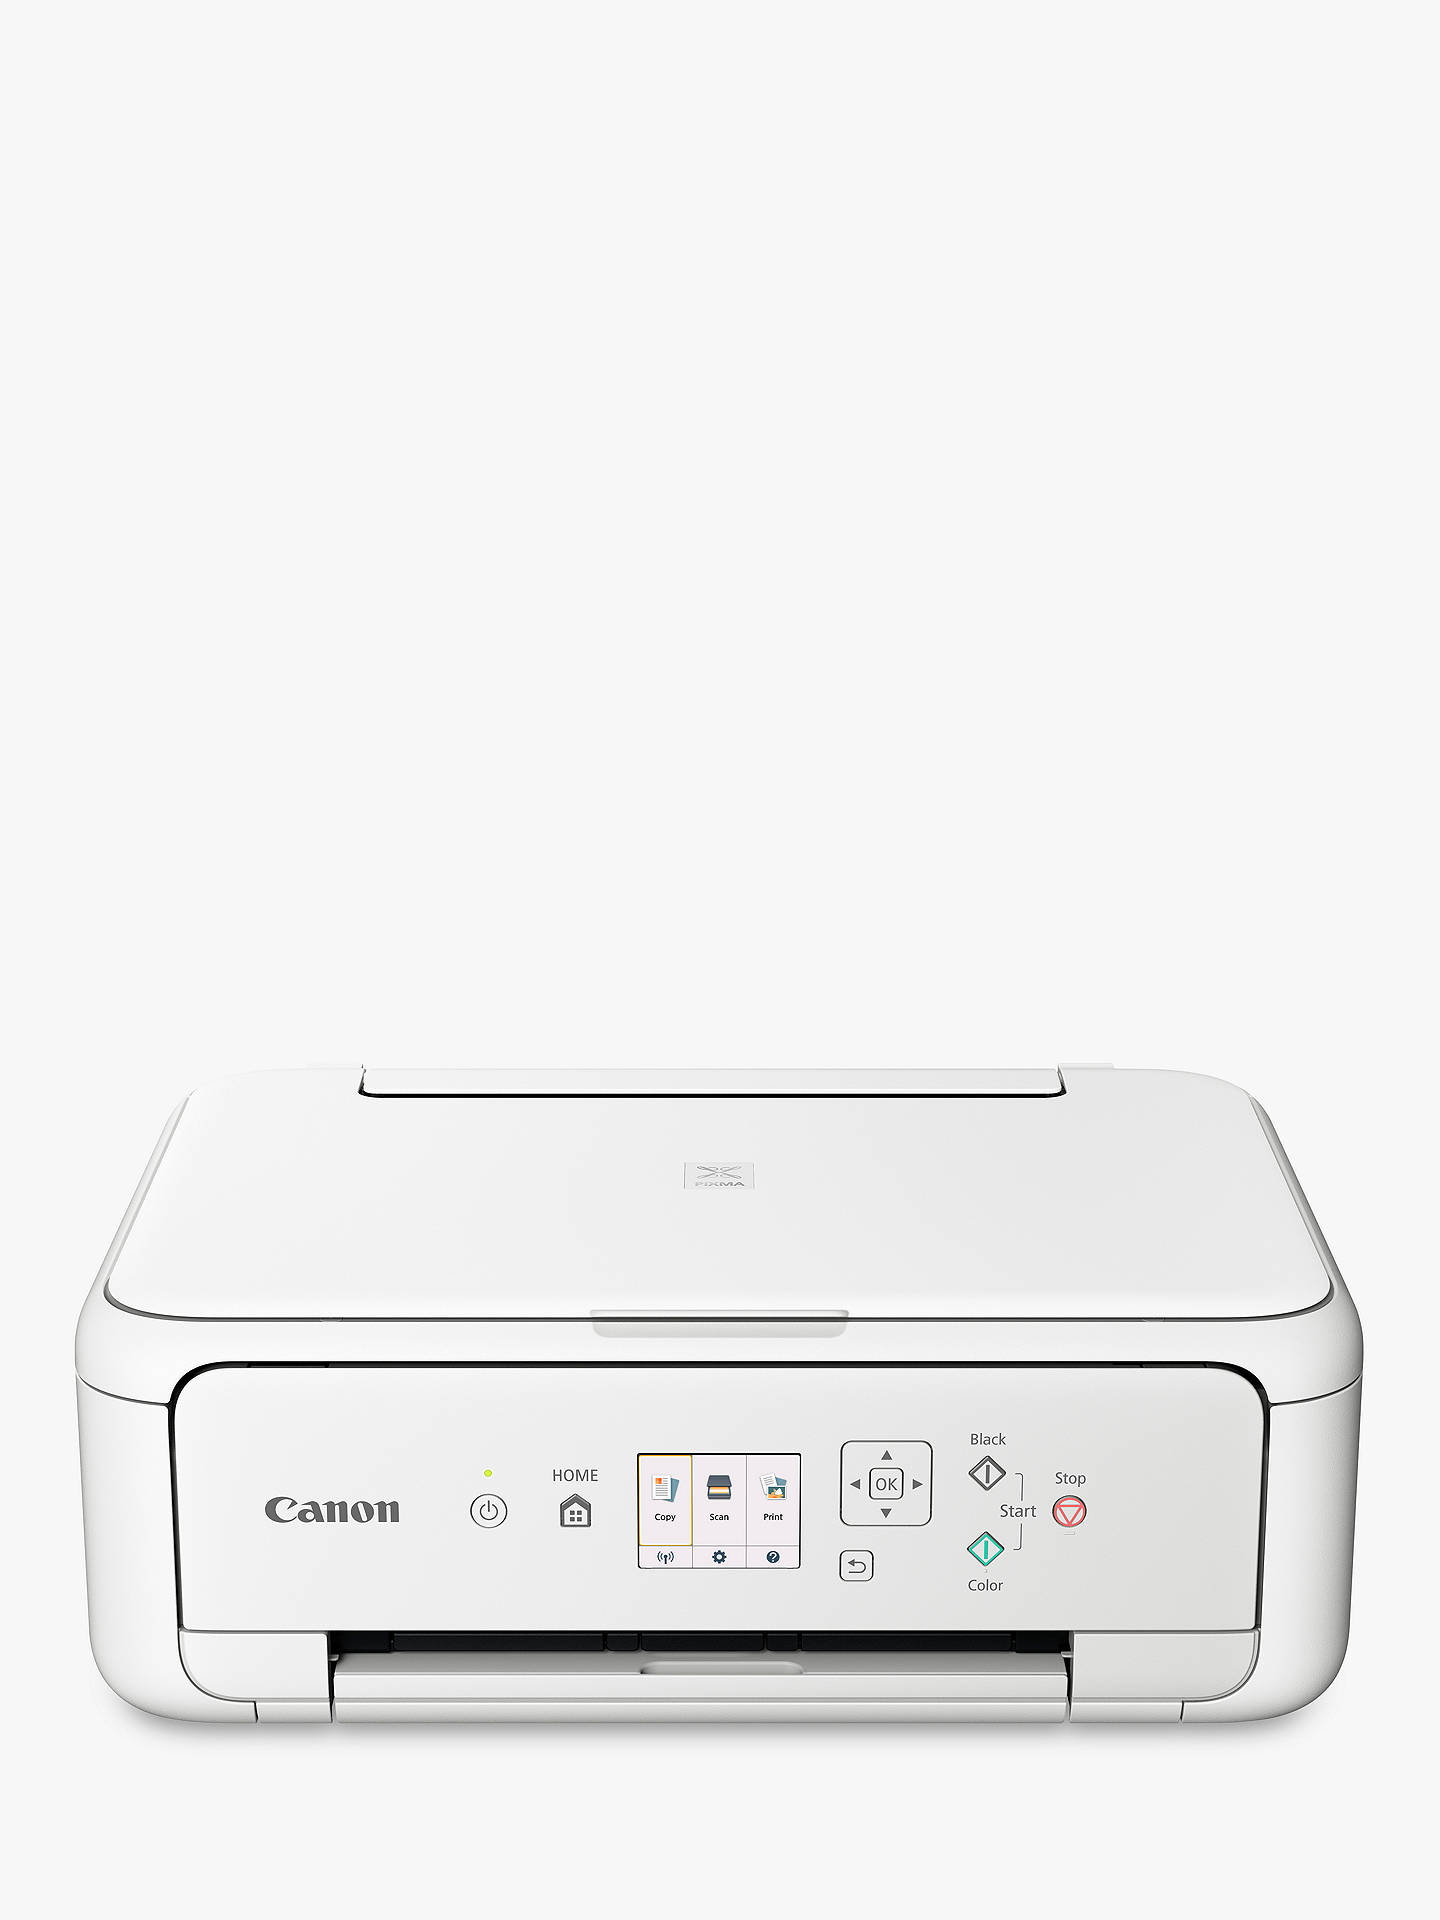 Canon PIXMA TS5151 All-in-One Wireless Wi-Fi Printer, White